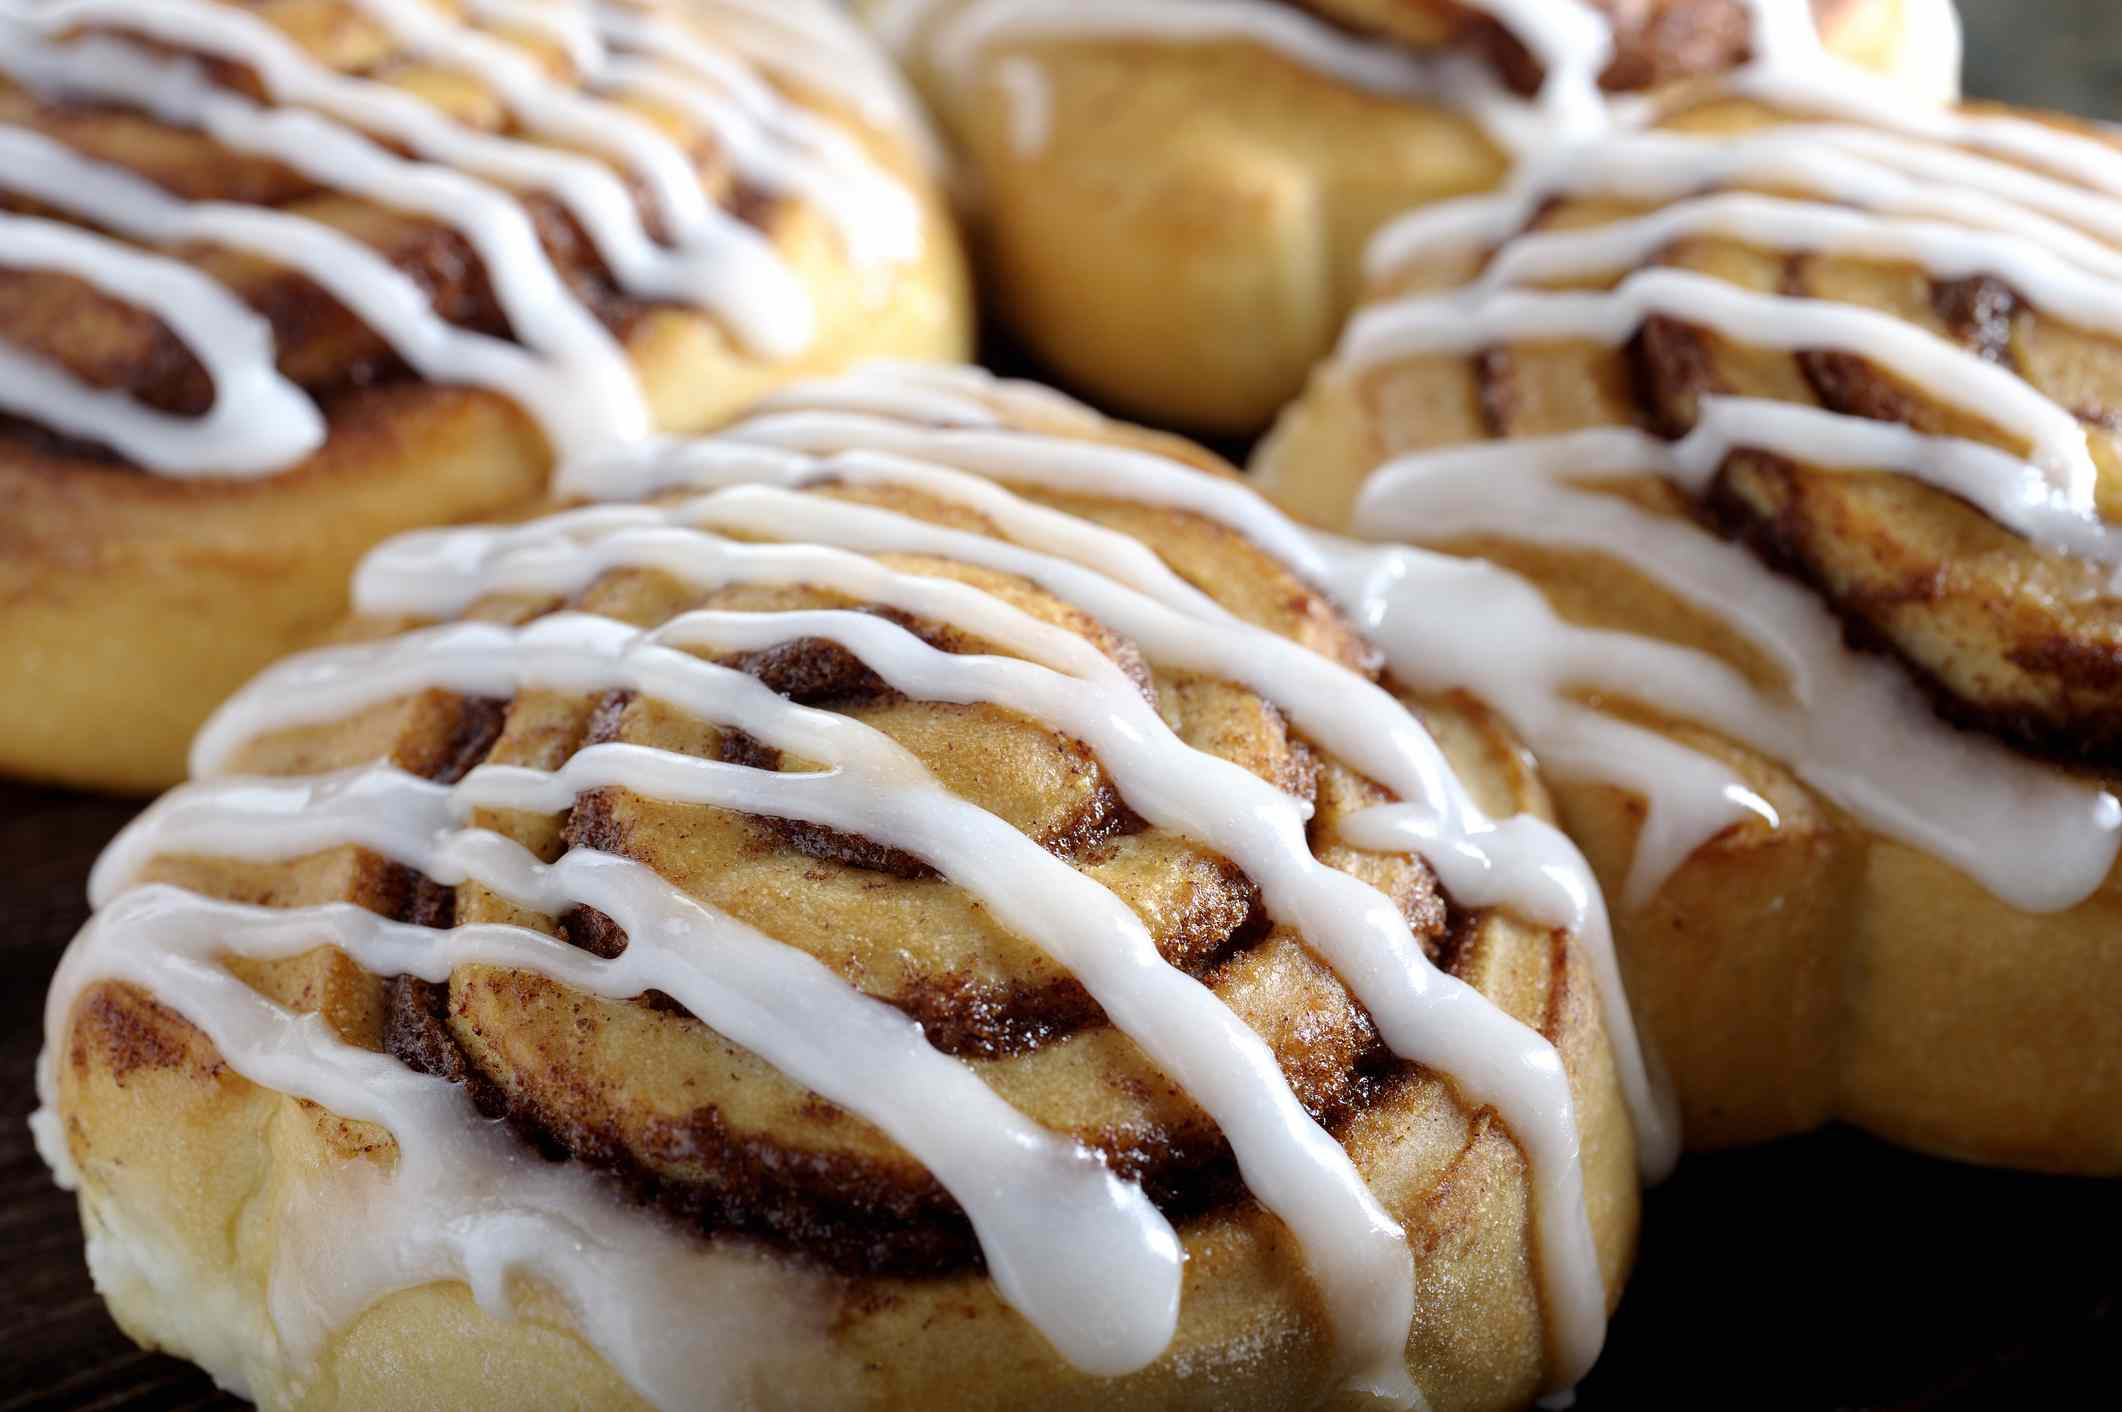 A close-up photo of cinnamon rolls with icing